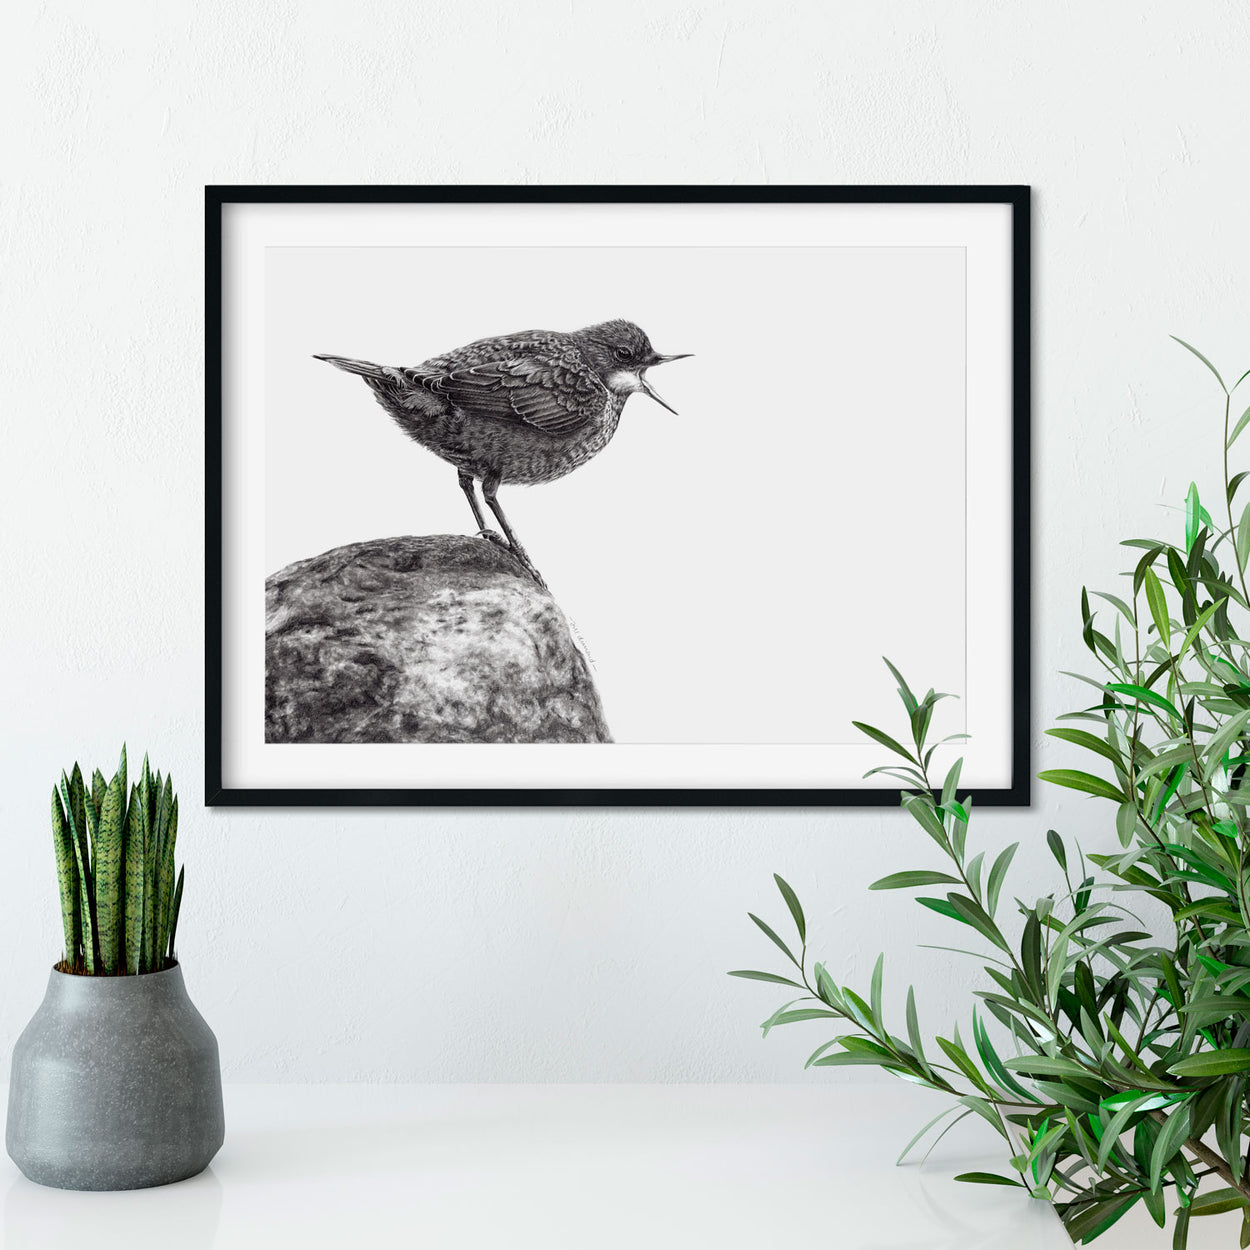 Dipper Drawing in Frame - The Thriving Wild